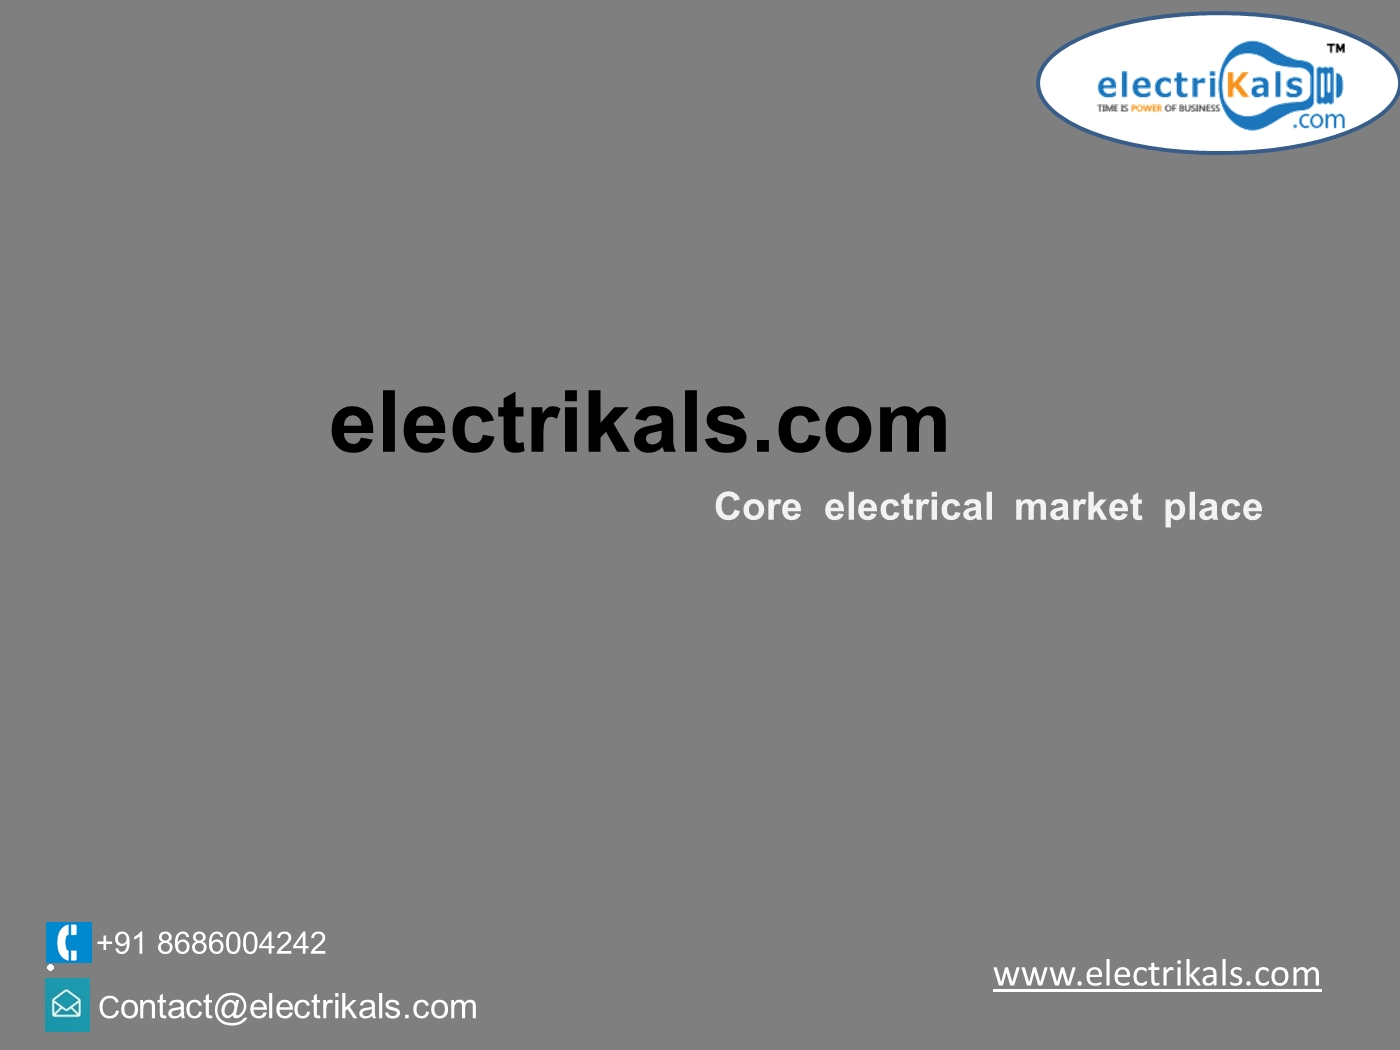 Buy MARU Electrical Products Online @ electrikals.com PowerPoint ...